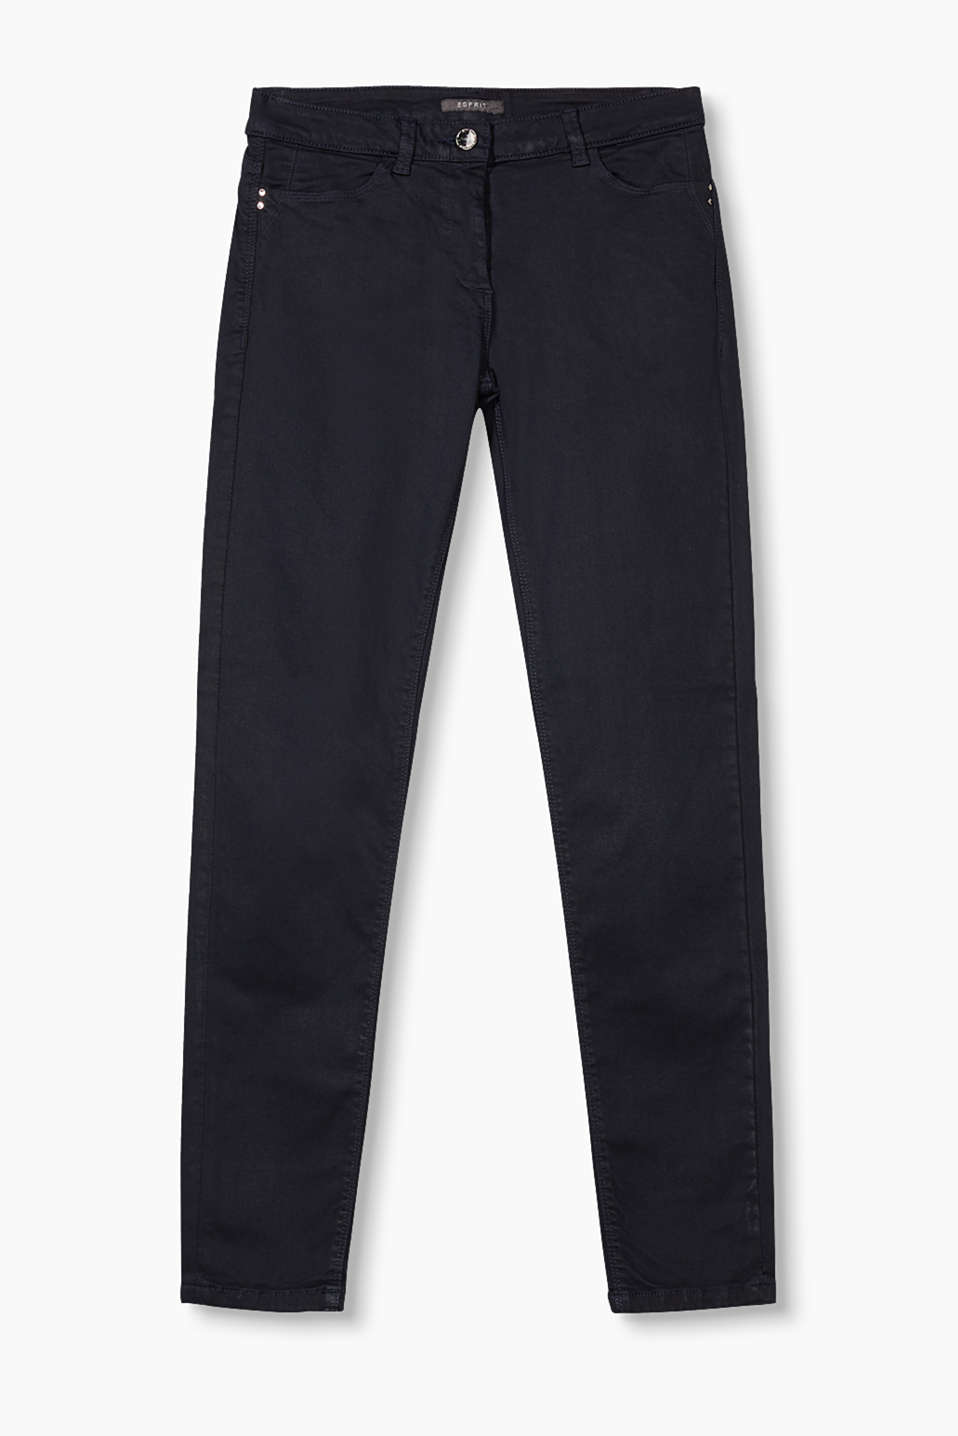 Super stretch jeans in a cotton-modal blend with a silky soft touch